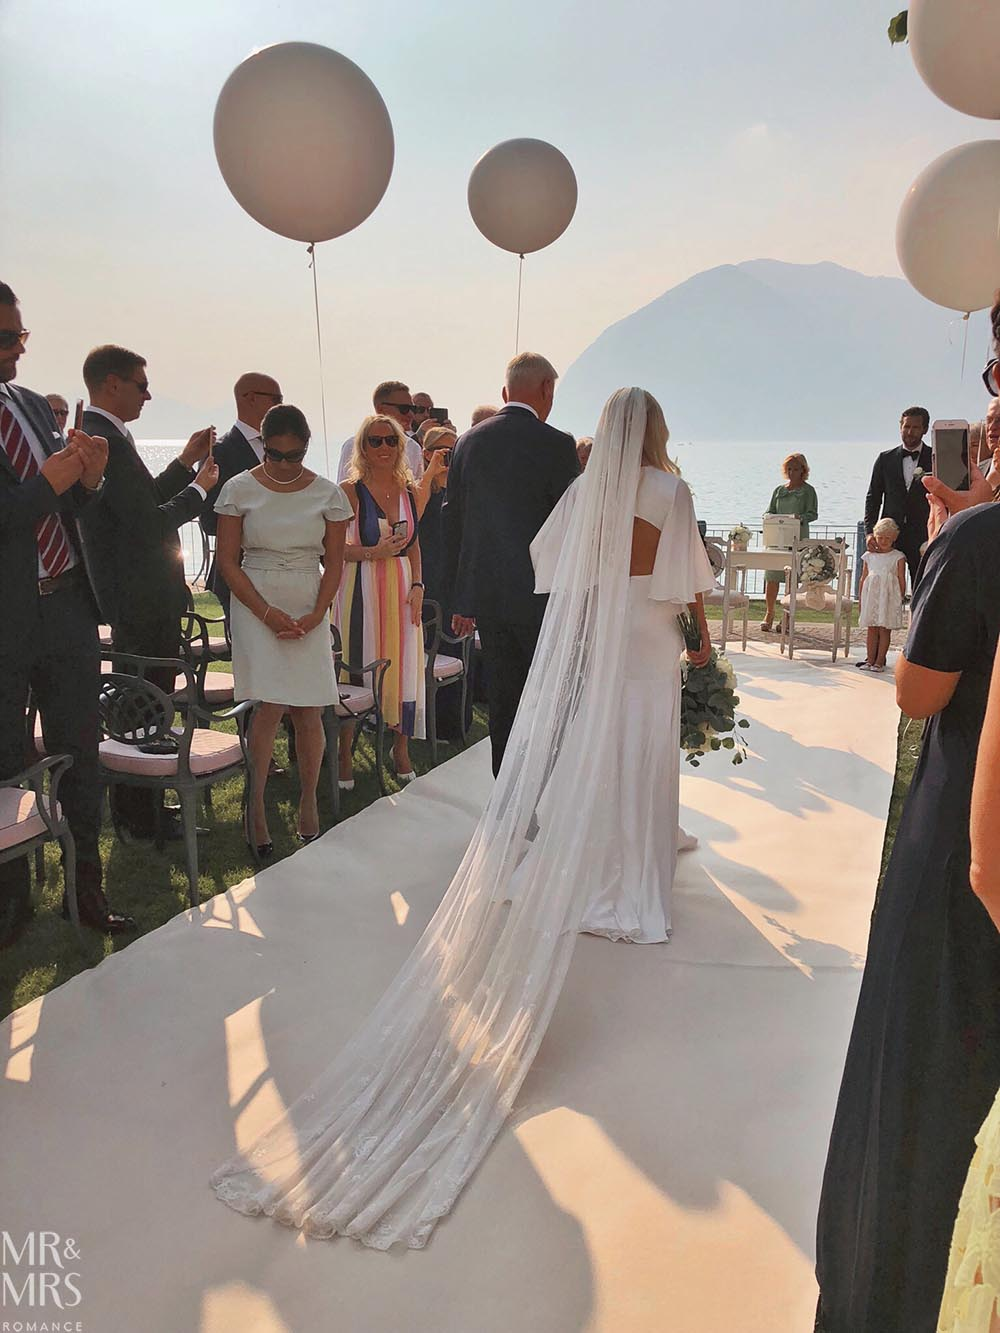 Wedding at Hotel Rivalago Lake Iseo Italy